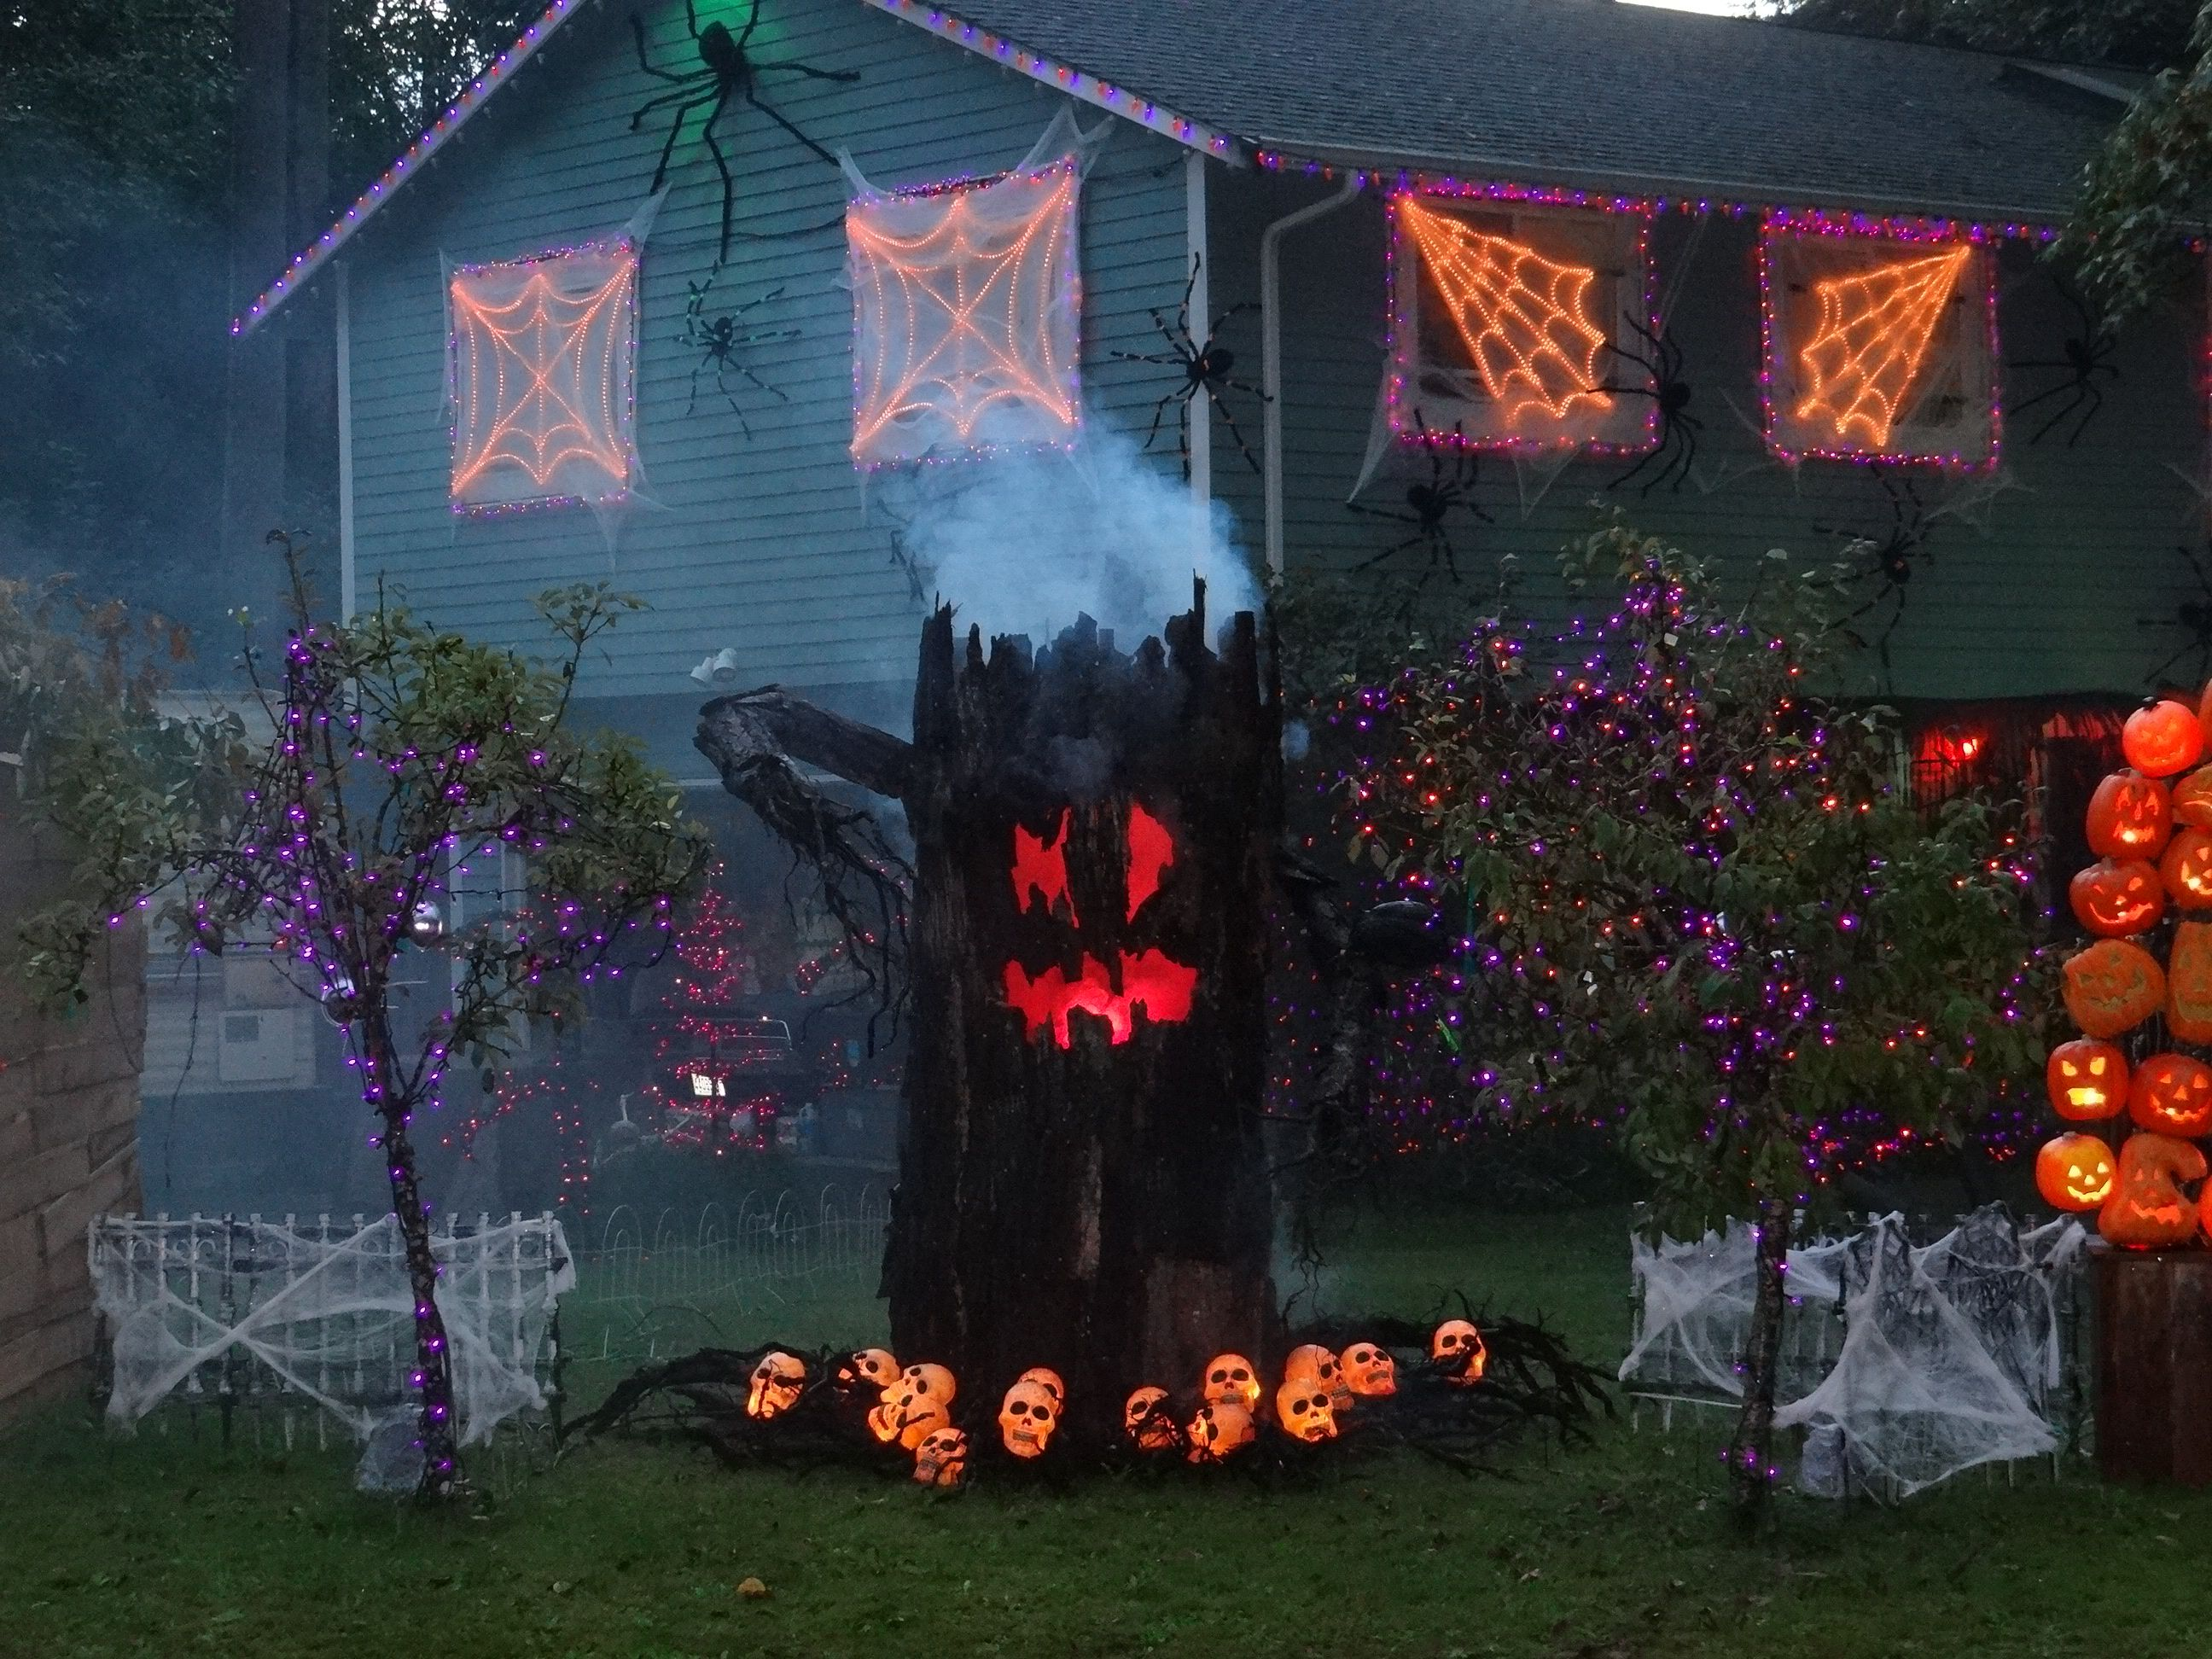 decoration cool decorating halloween outdoor with scary black tree and spyder also pumpkins for halloween outdoor design ideas wonderful halloween outdoor - Scary Halloween Yard Decorating Ideas